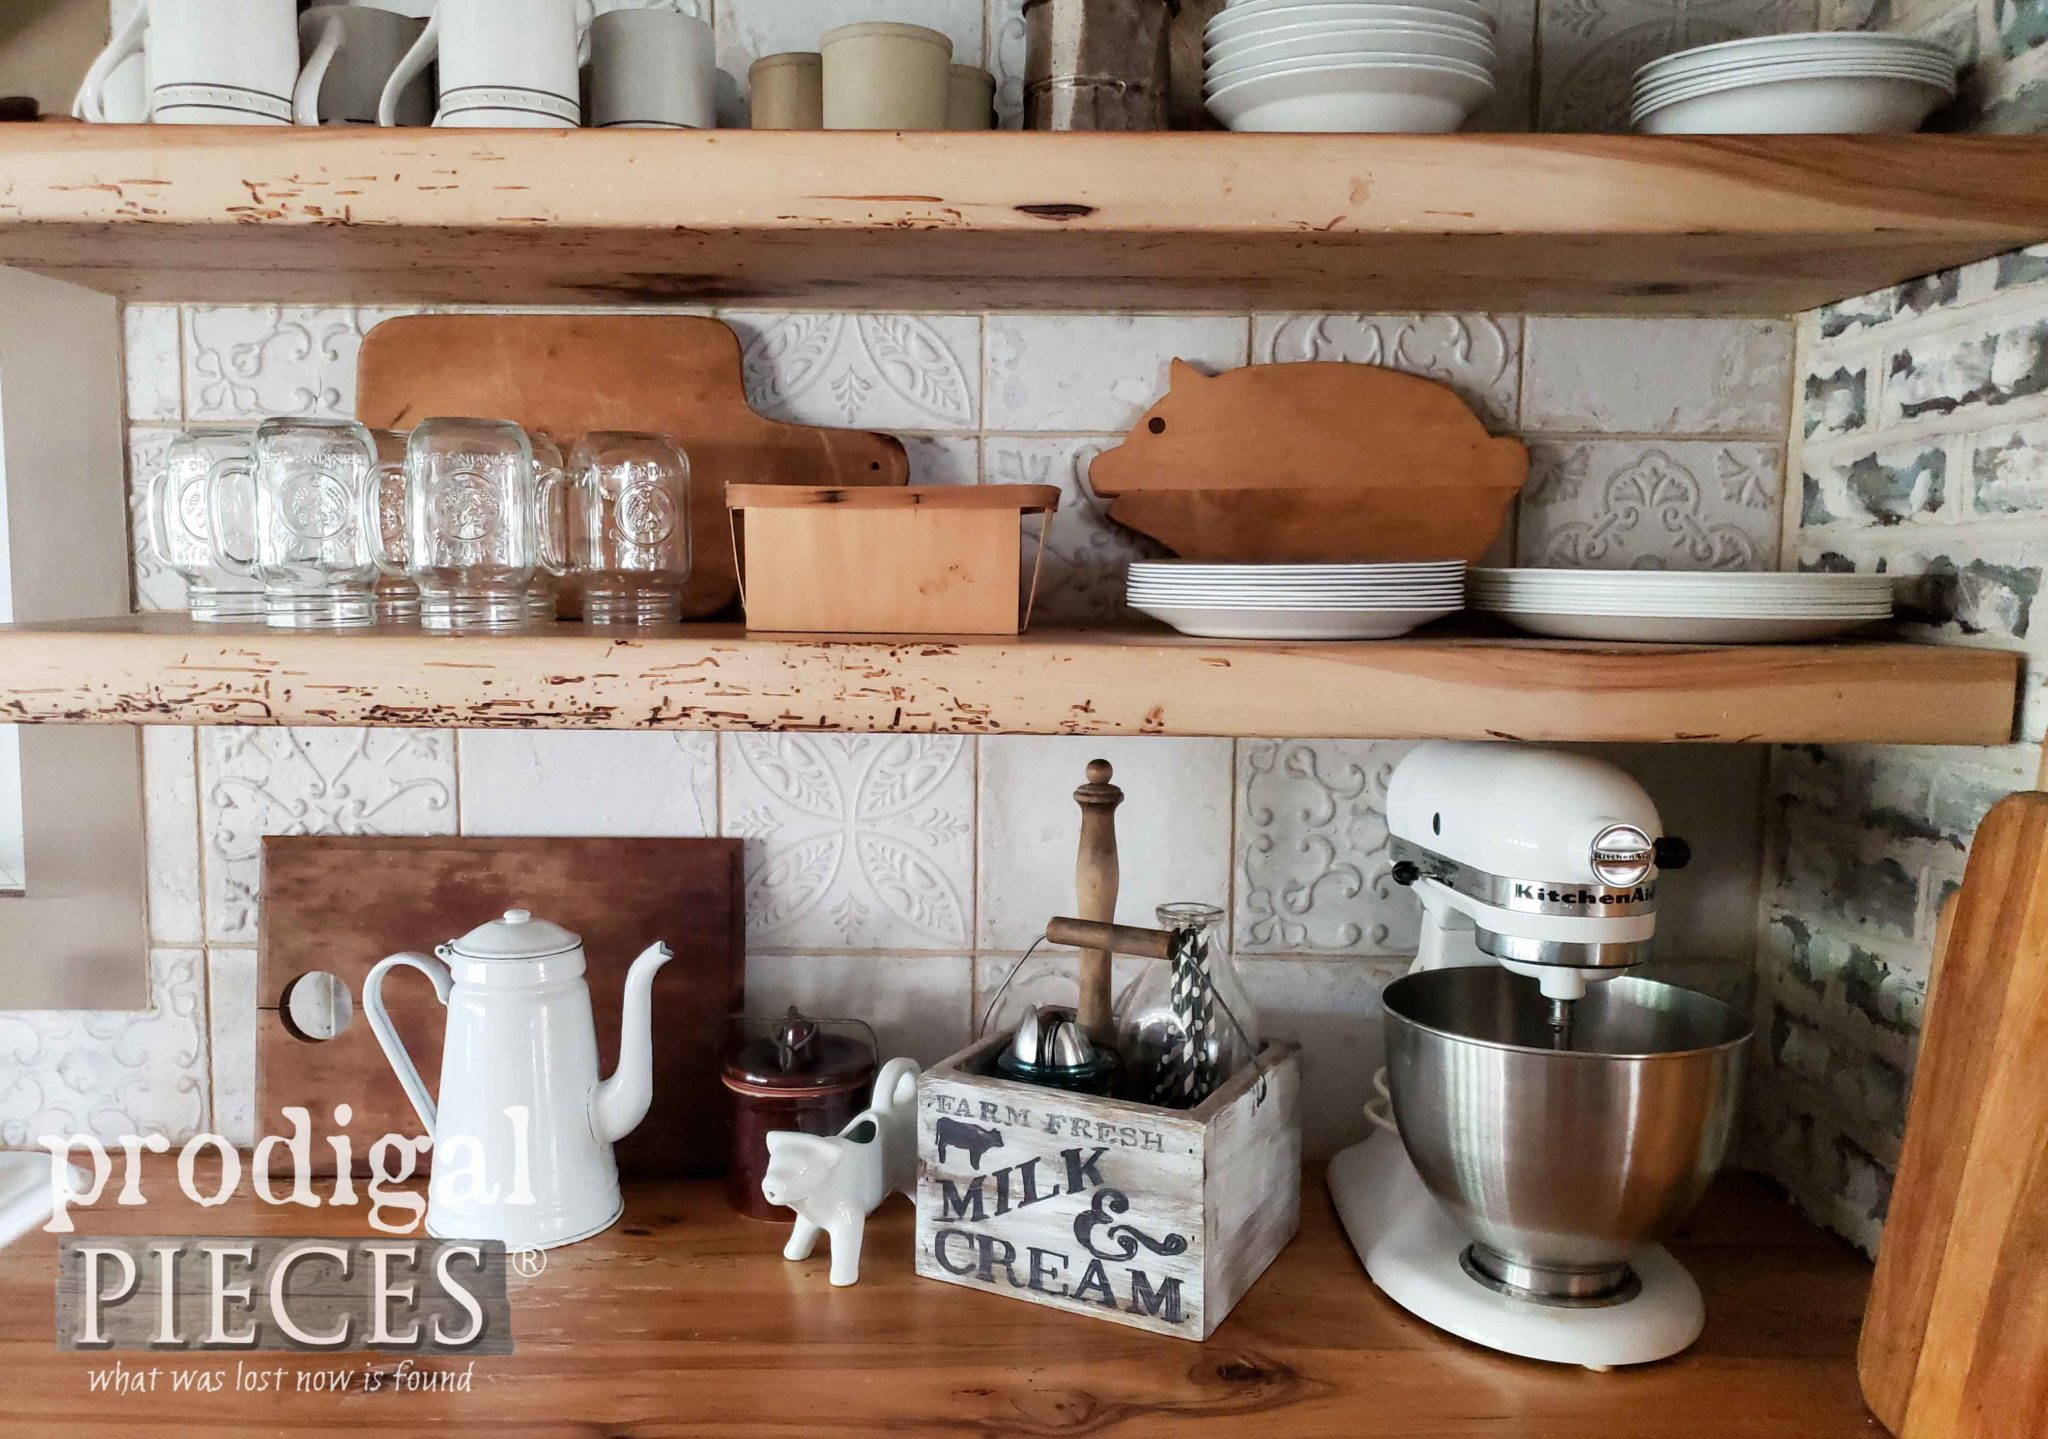 Rustic Farmhouse Style Kitchen with DIY decor by Larissa of Prodigal Pieces | prodigalpieces.com #prodigalpieces #kitchen #farmhouse #diy #homedecor #home #storage